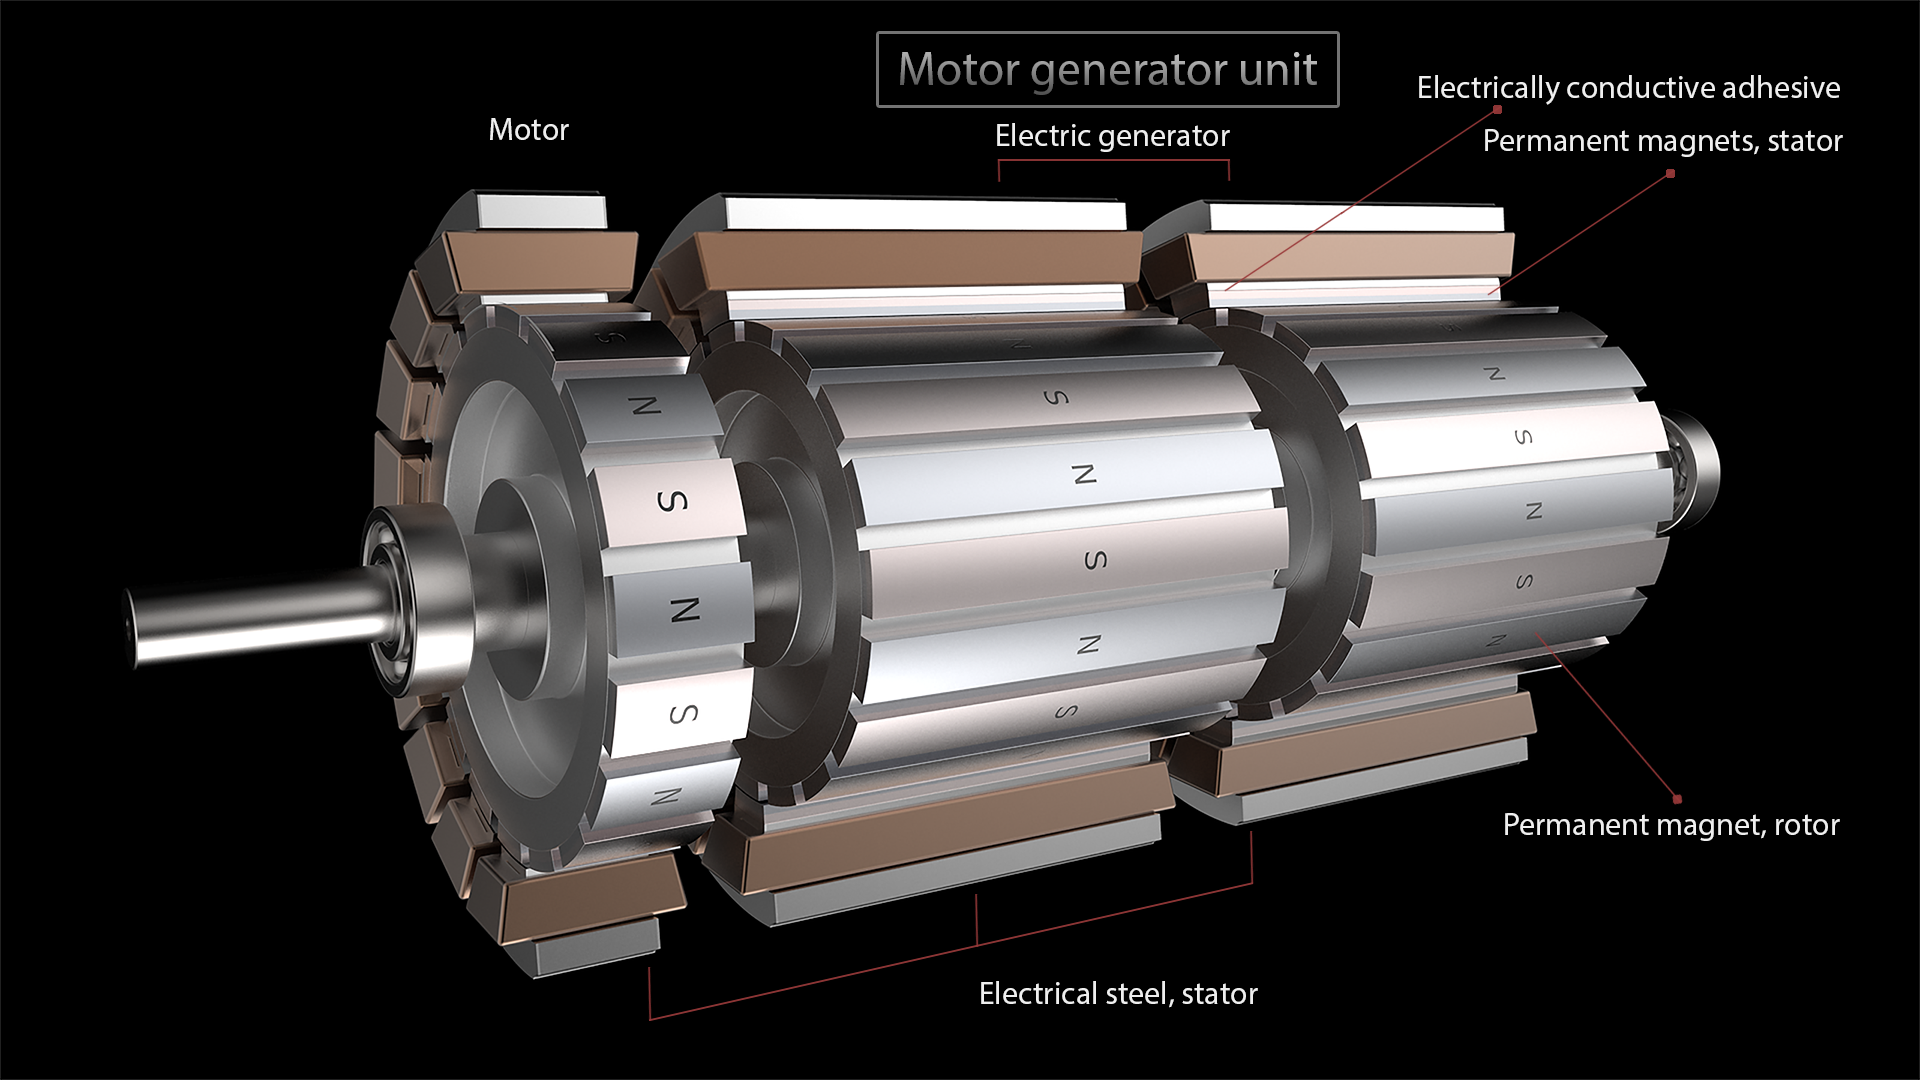 electric generator. Motor Generator Unit. Permanent Magnets Are Located On The Rotor And Stator Of Electric Generator. Electrical Steel, Stator.